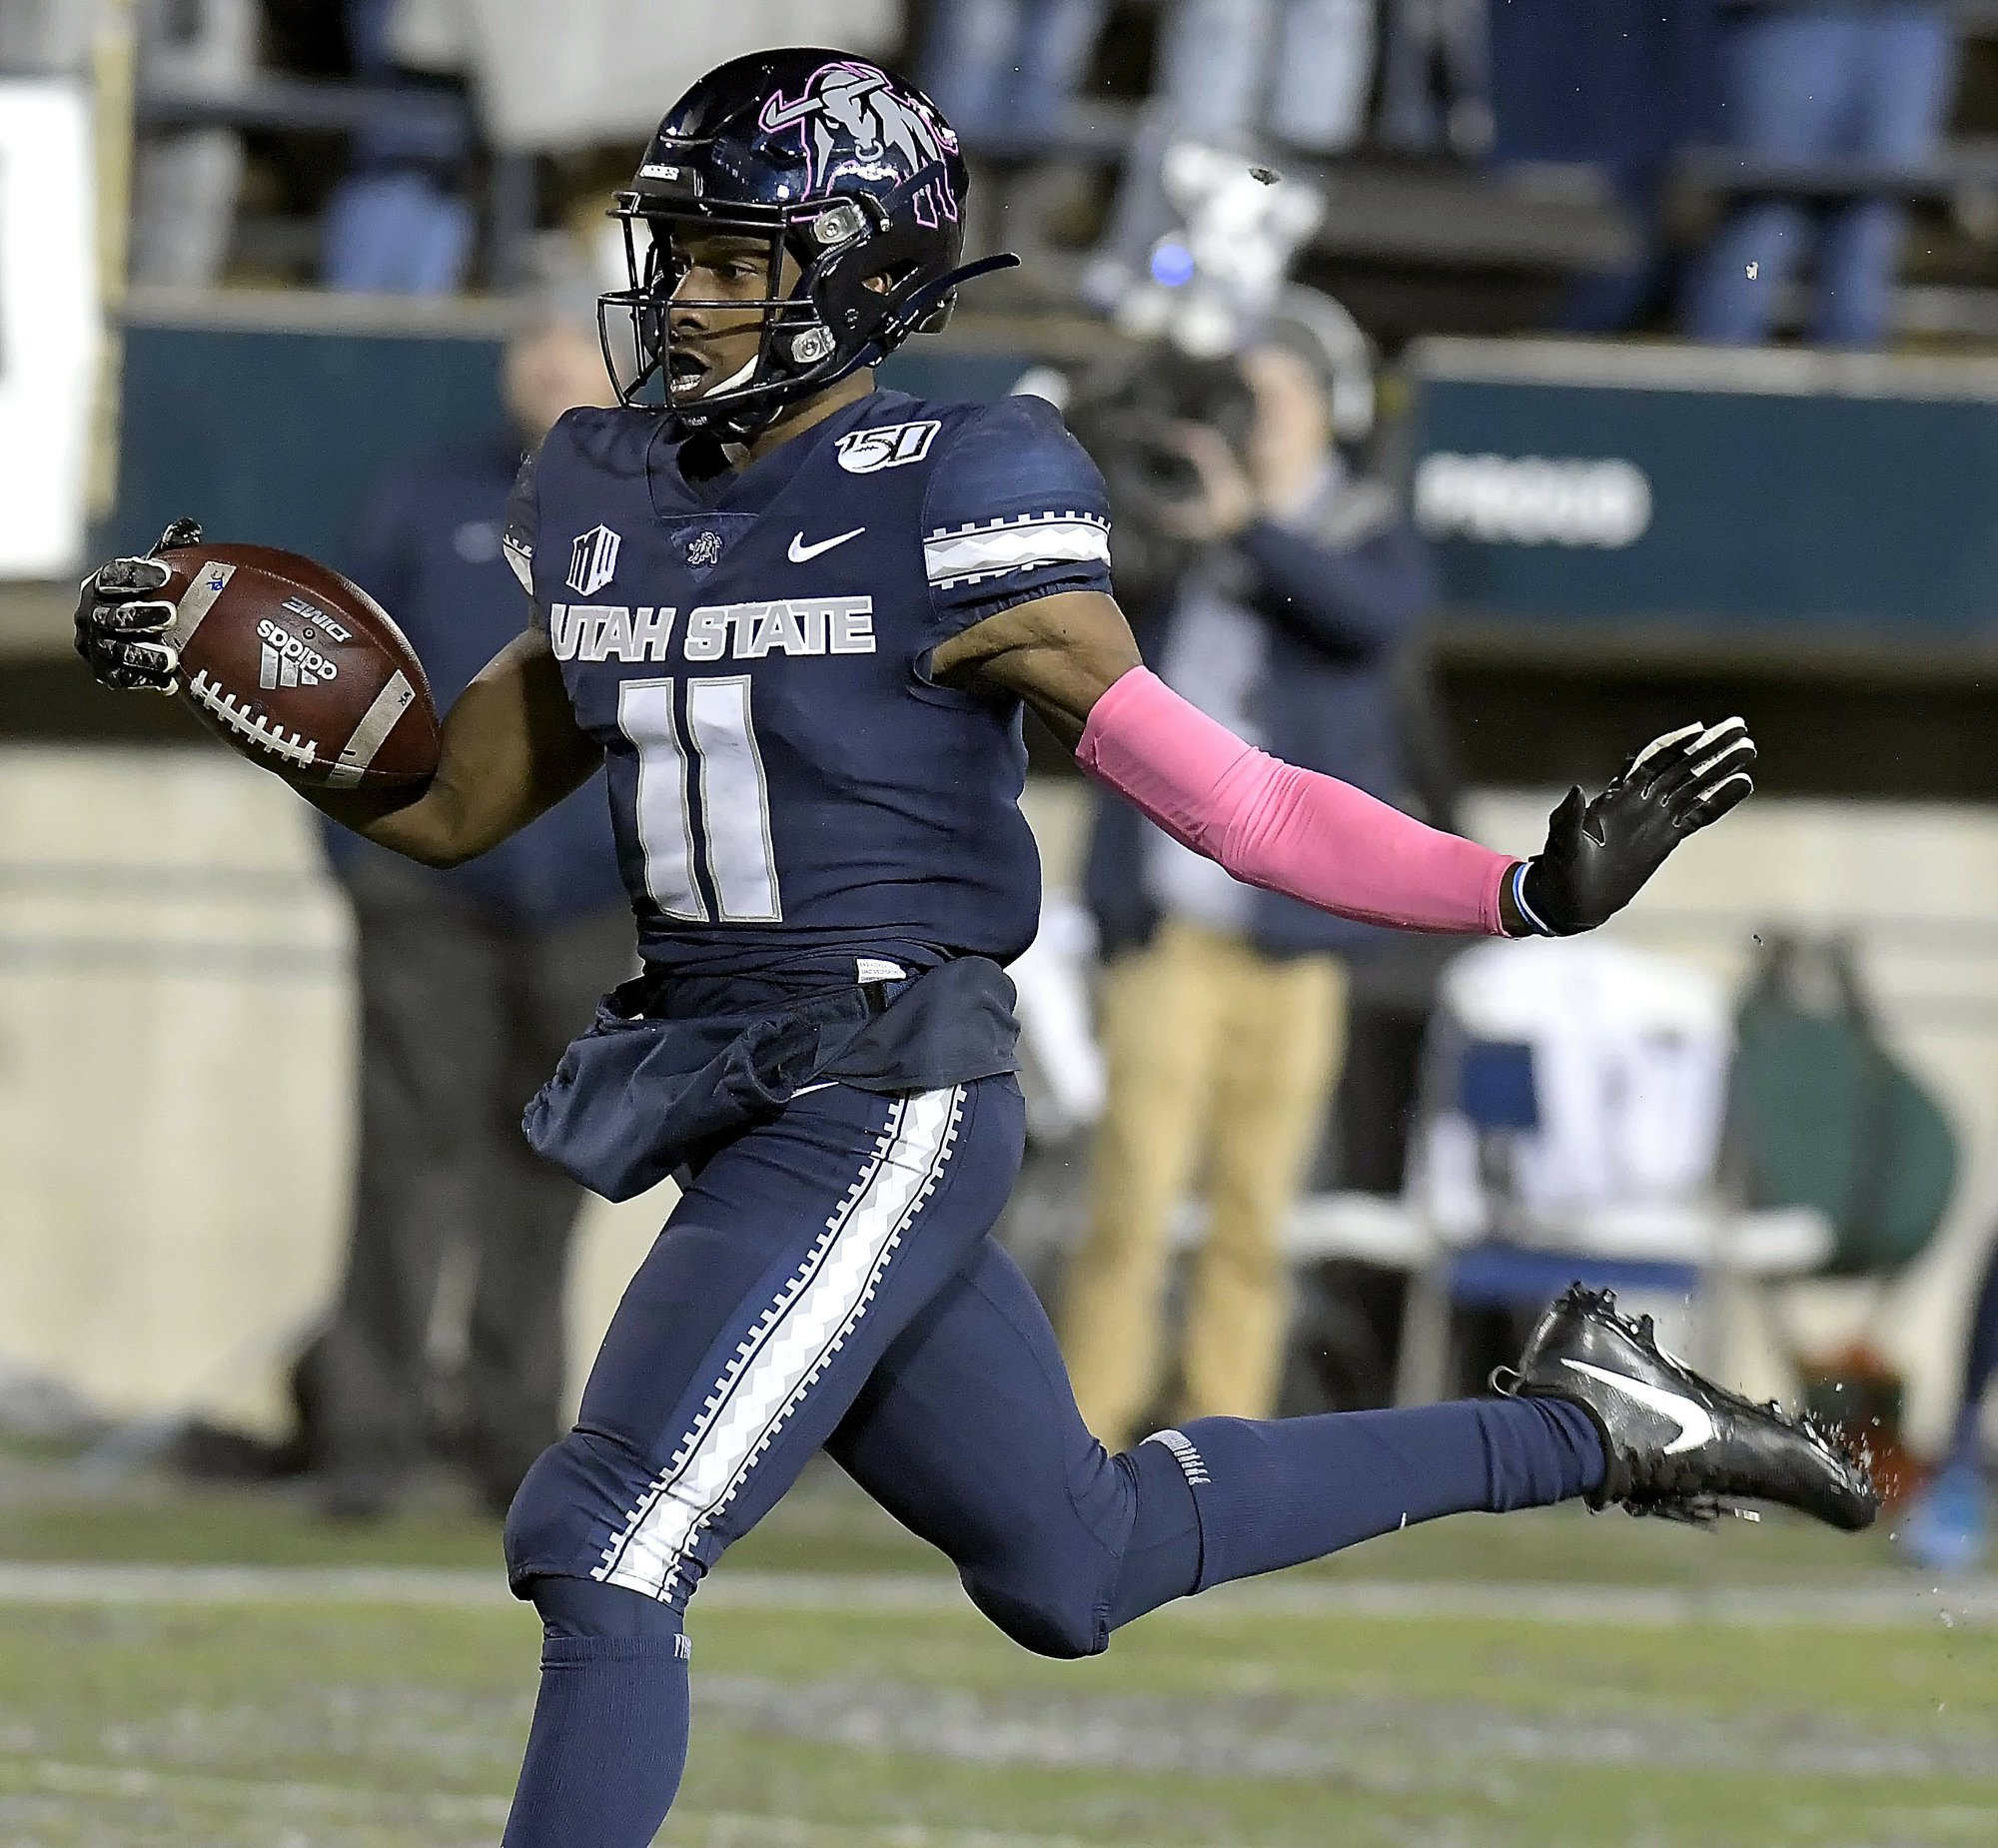 STAT WATCH: Kick to Utah State's Scarver at your own risk